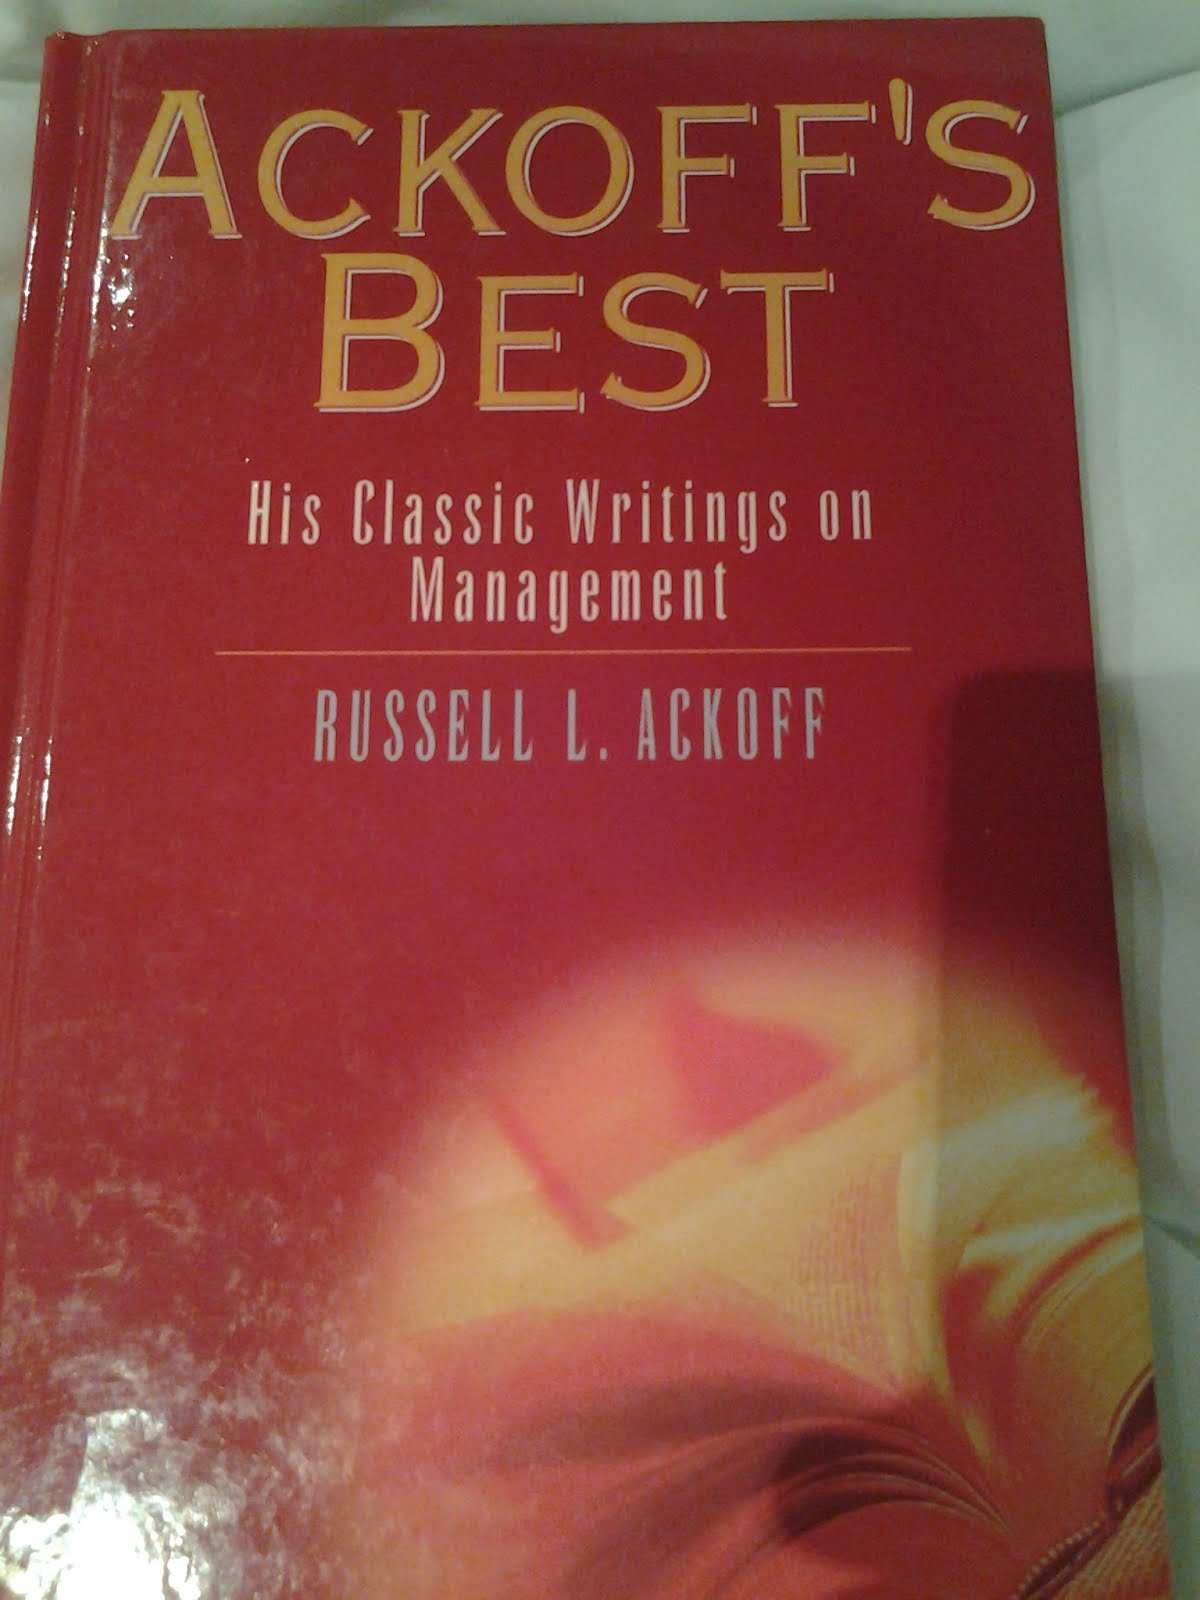 Ackoff's Best by Russell